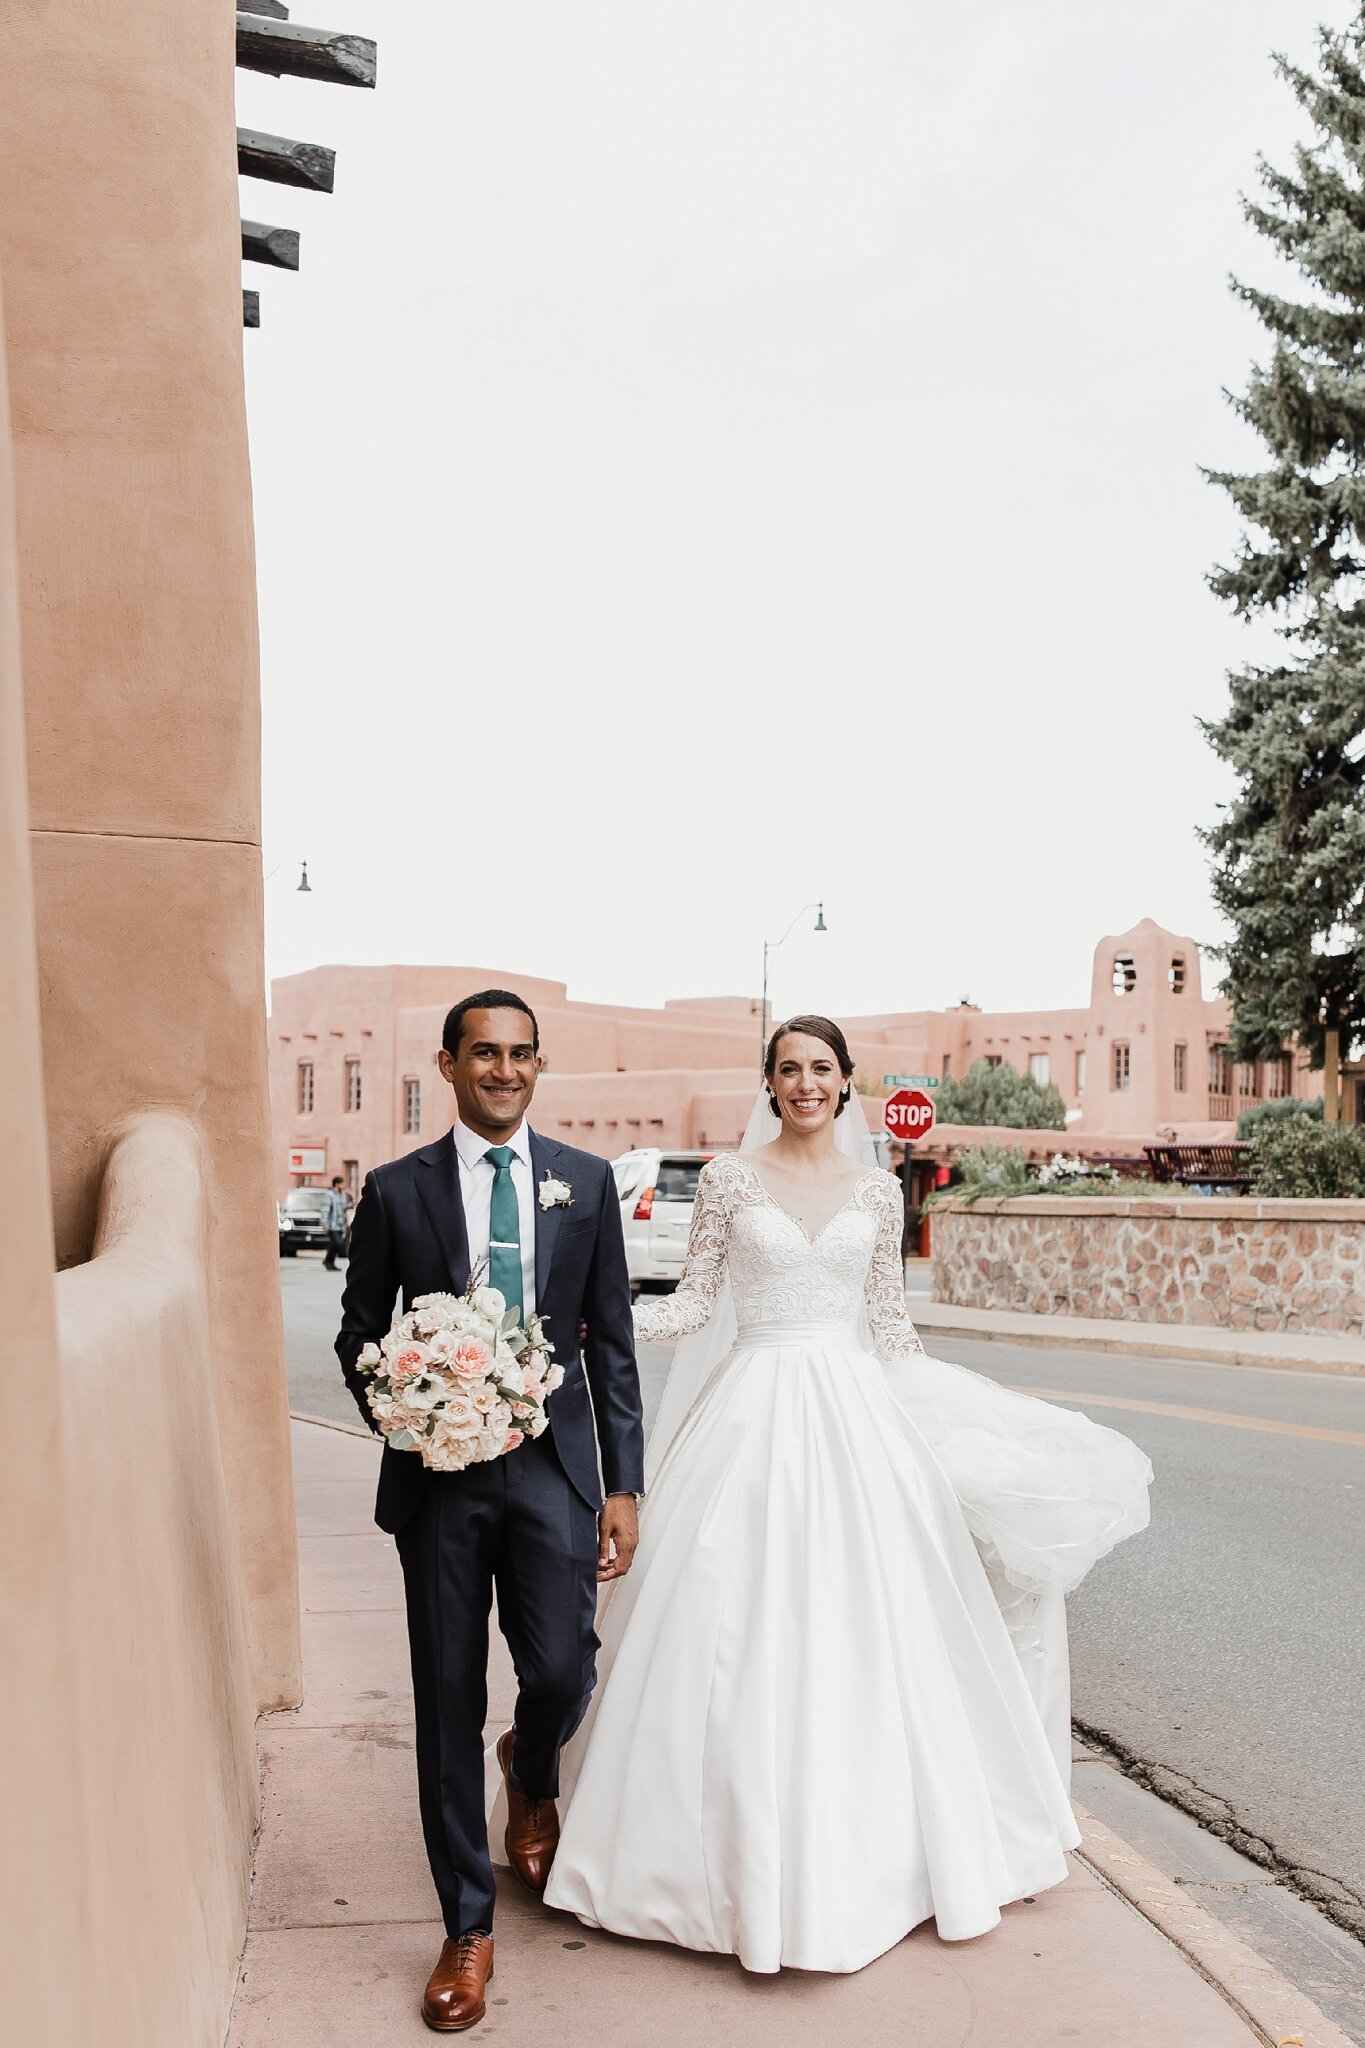 Alicia+lucia+photography+-+albuquerque+wedding+photographer+-+santa+fe+wedding+photography+-+new+mexico+wedding+photographer+-+new+mexico+wedding+-+hindu+wedding+-+catholic+wedding+-+multicultural+wedding+-+santa+fe+wedding_0055.jpg